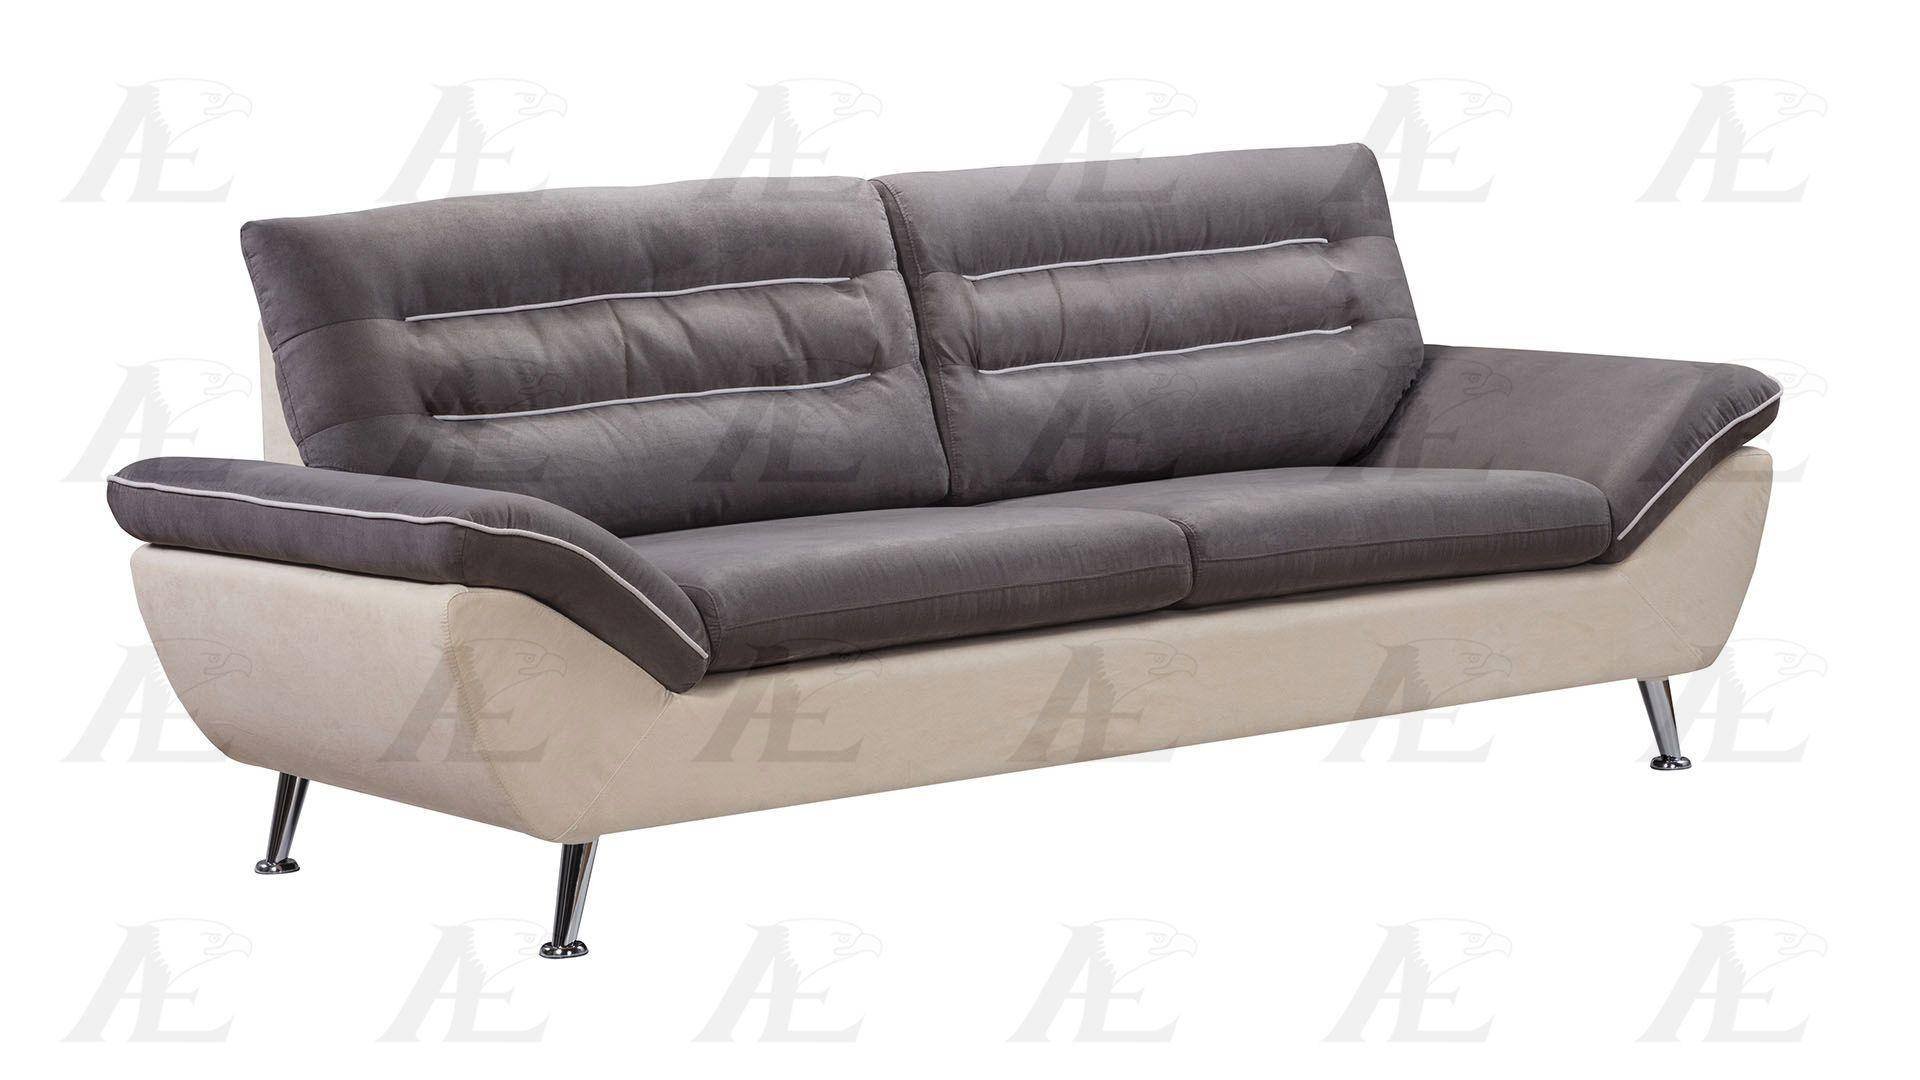 Enjoyable American Eagle Furniture Ae2365 Gray And Yellow Sofa Fabric Modern Pdpeps Interior Chair Design Pdpepsorg